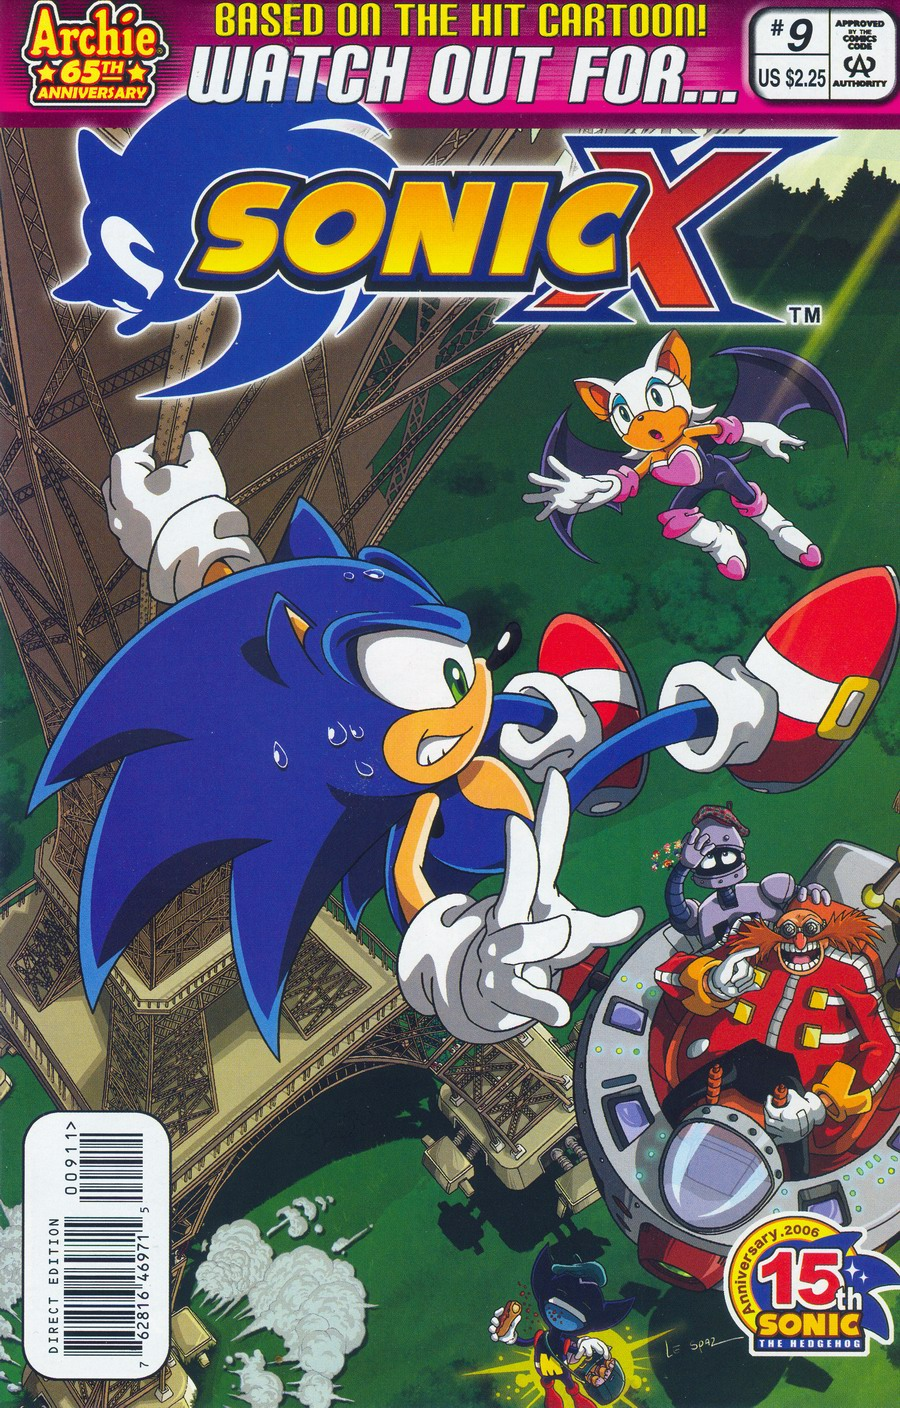 Sonic X - June 2006 Comic cover page